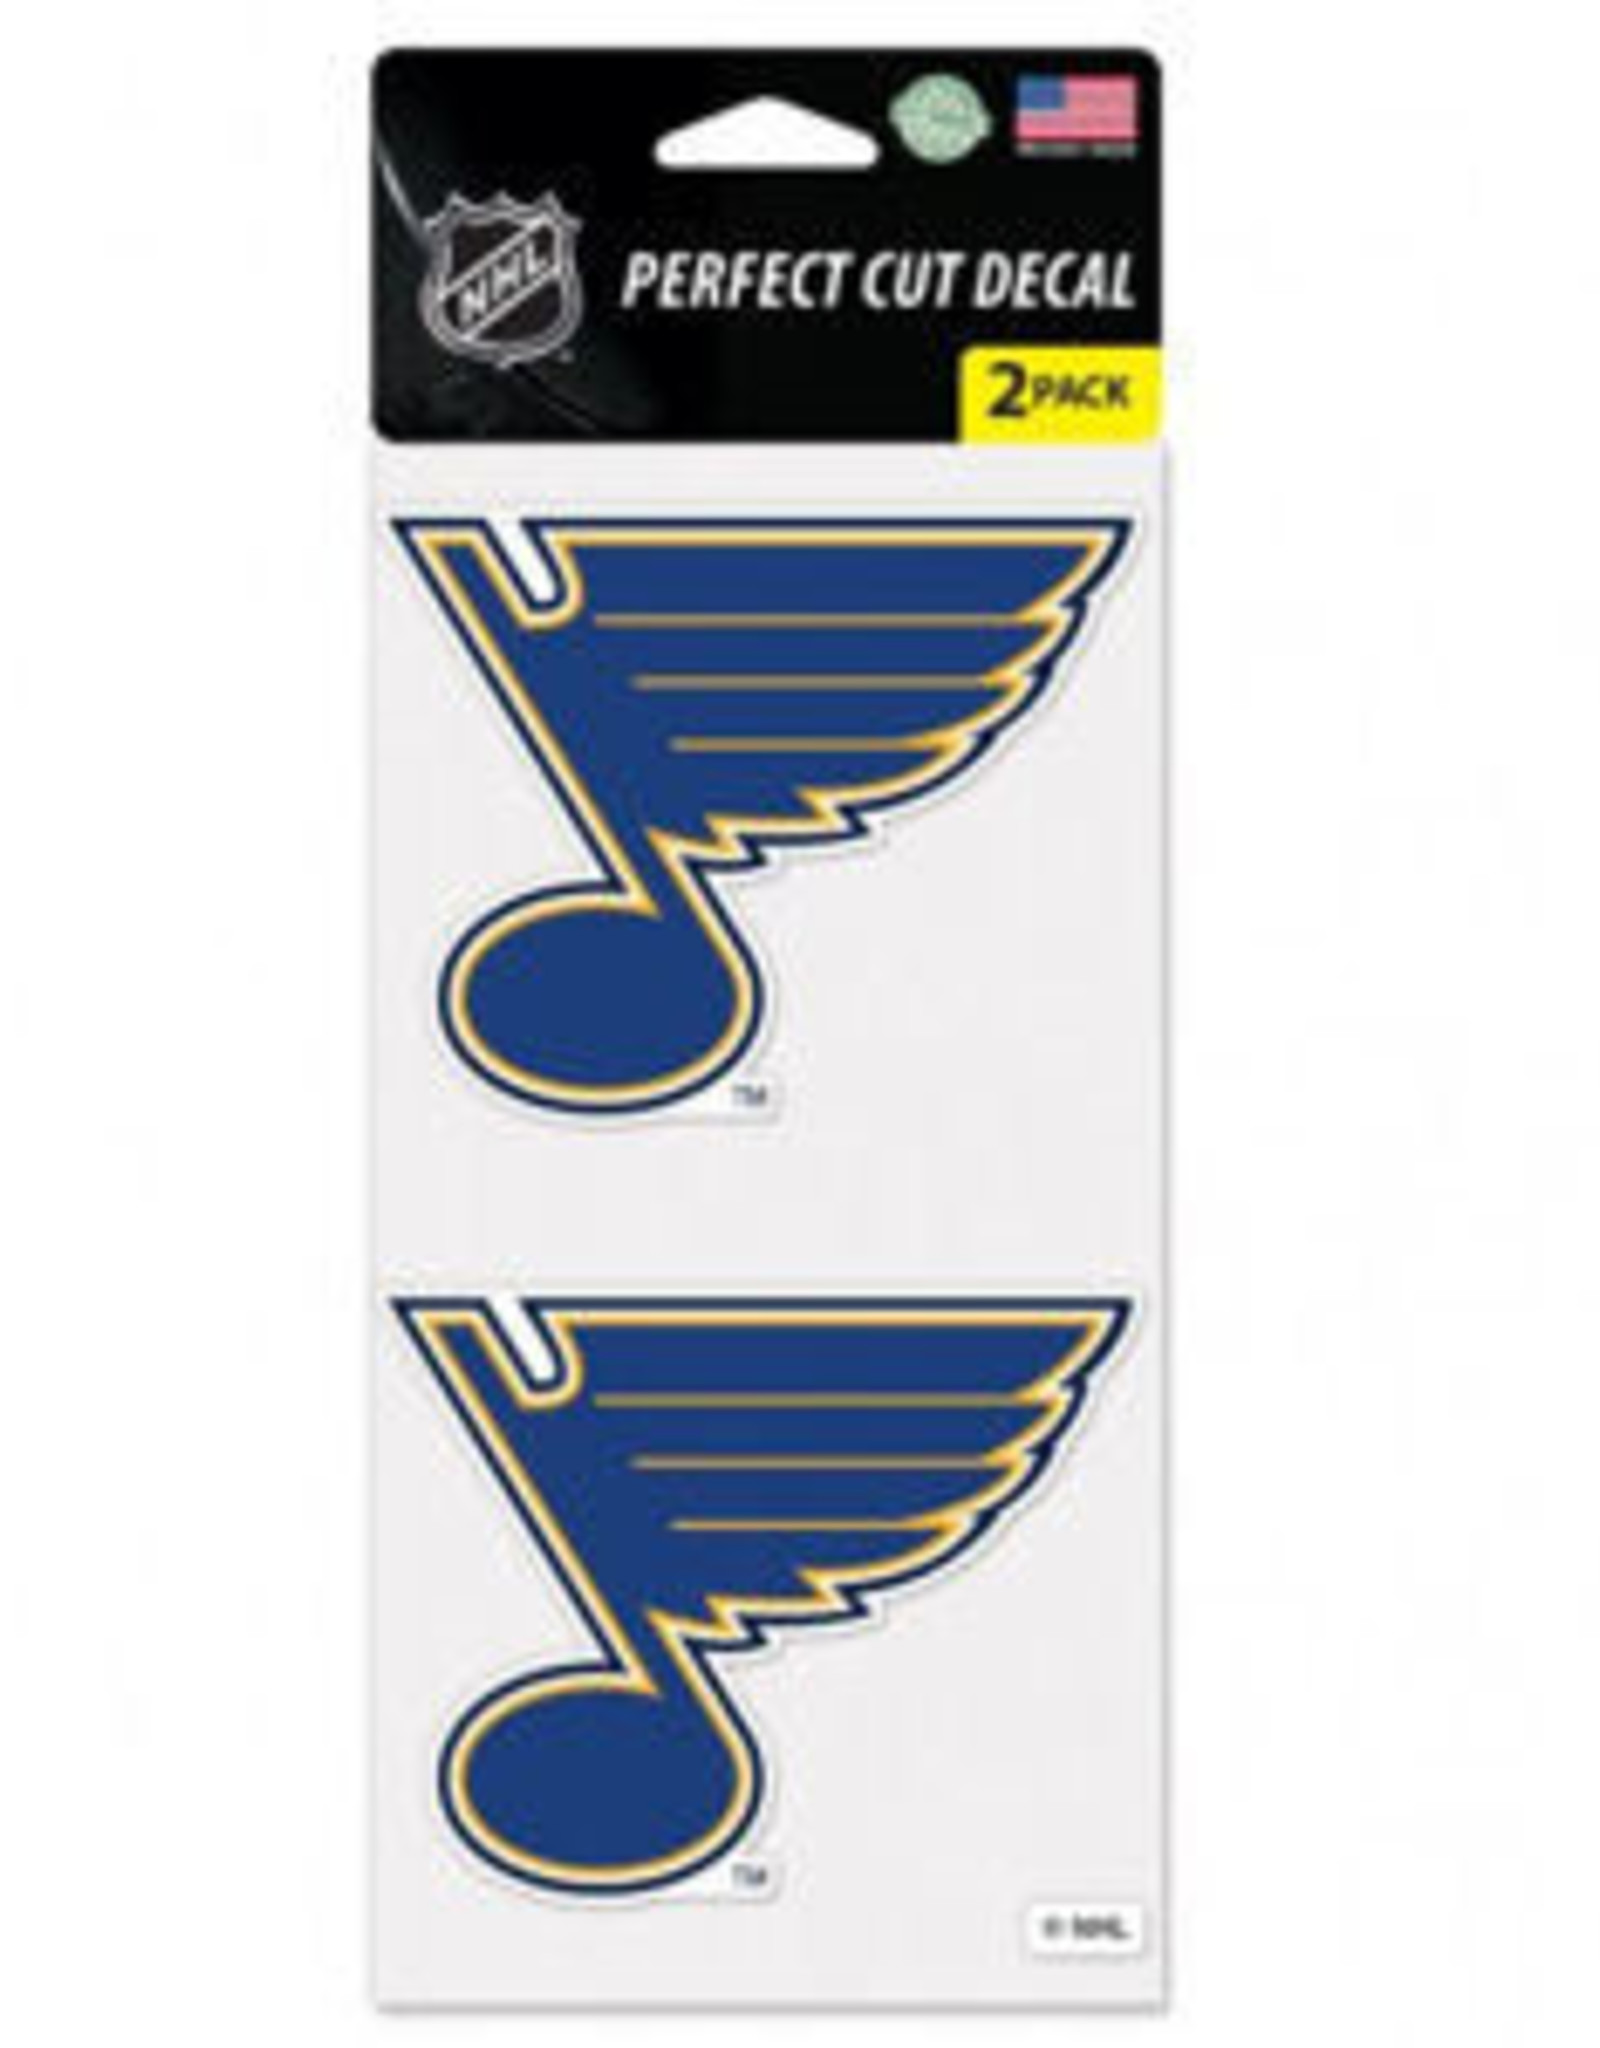 Wincraft Wincraft Blues Perfect Cut Decal (2 Pack)